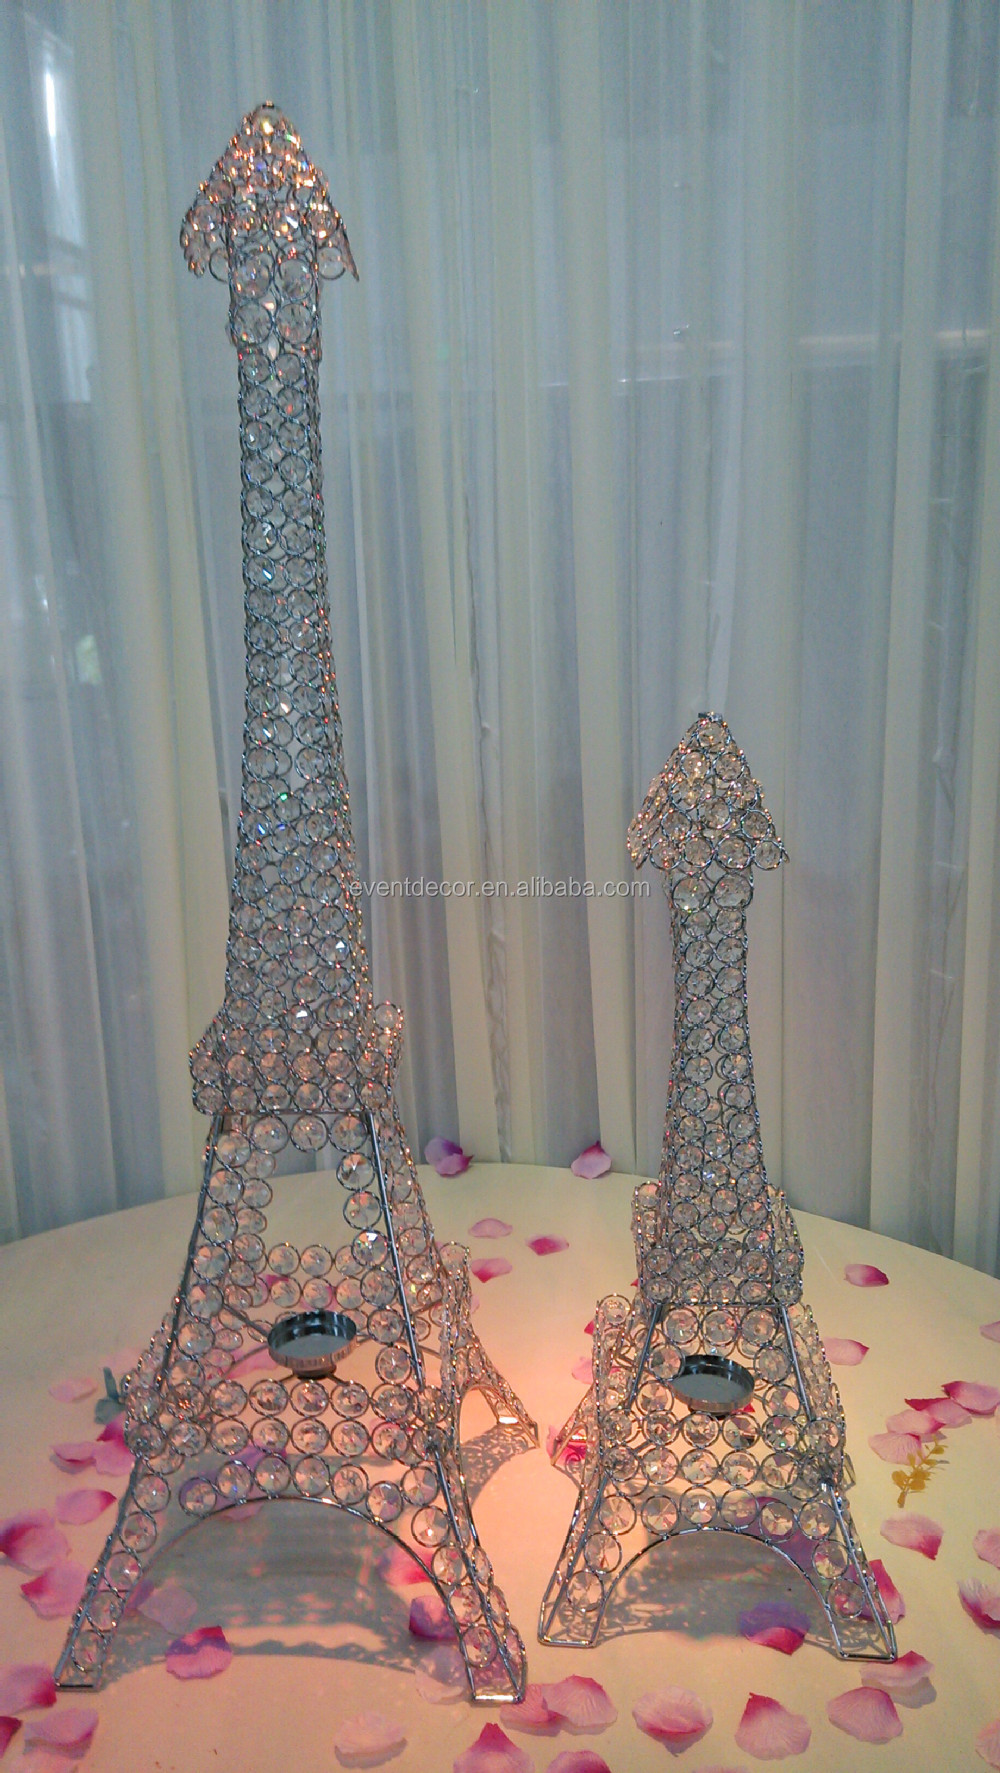 New Product Eiffel Tower Centerpieces For Wedding Table Decoration View Eiffel Tower Ouge